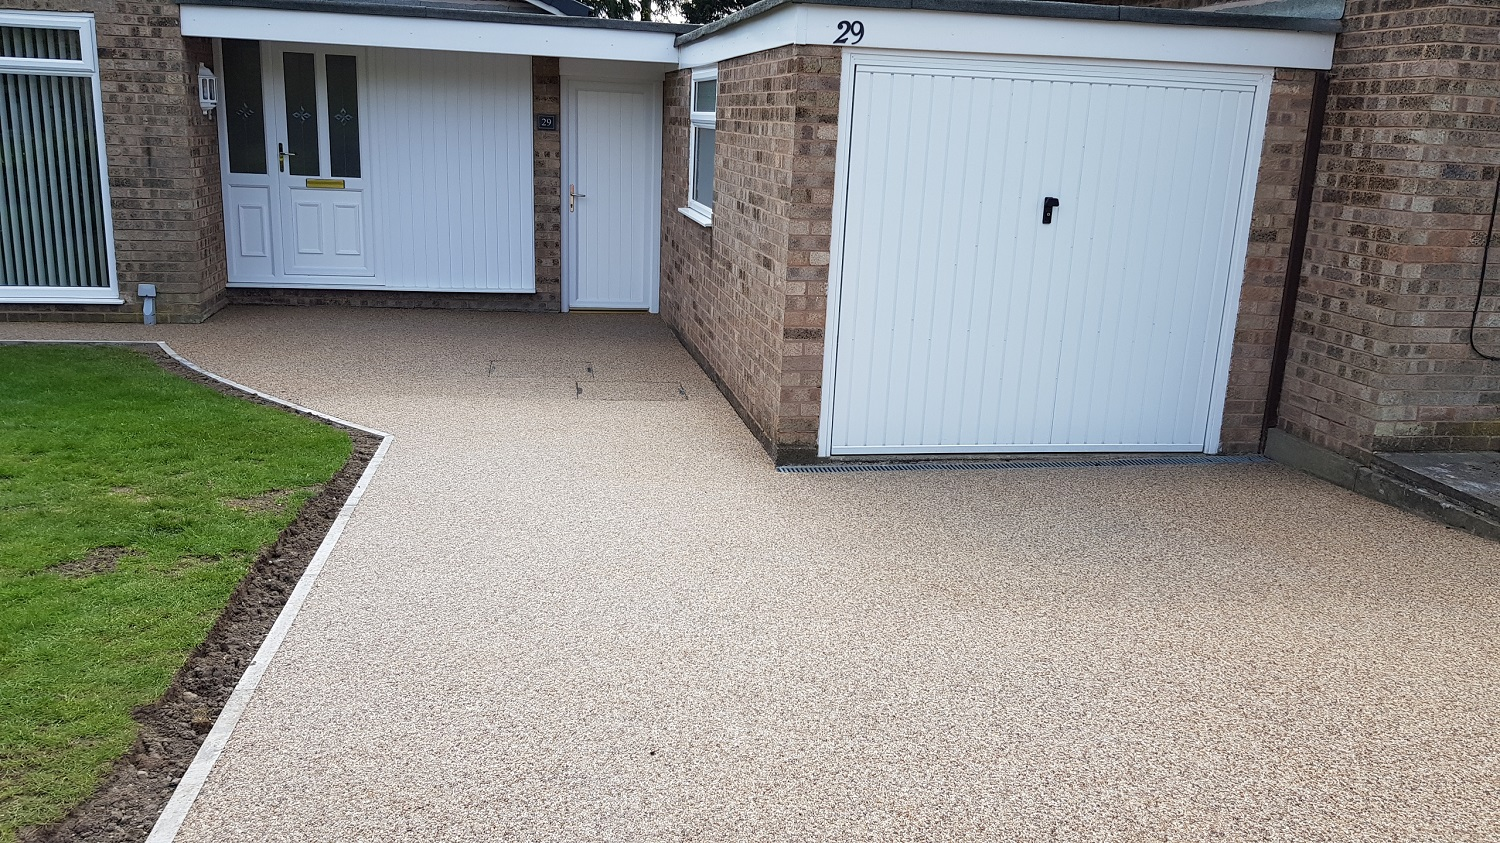 R21 - Milk Chocolate Mix Resin Bound Path Surfacing at Brampton in Chesterfield